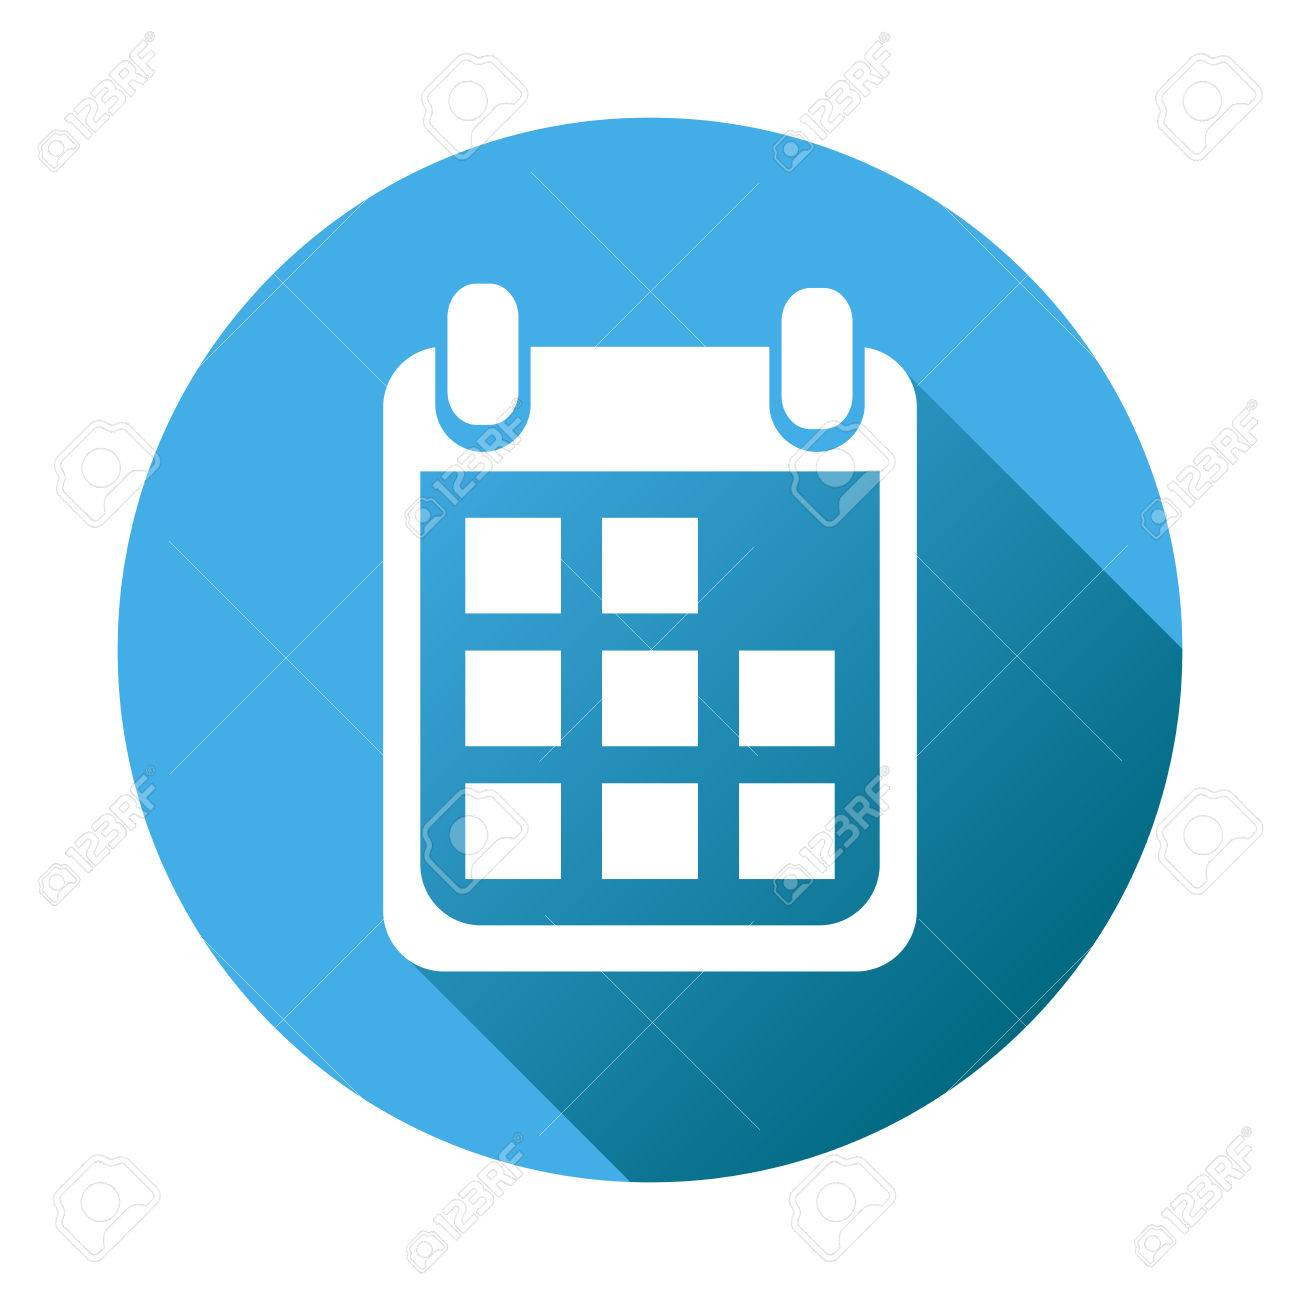 Calendar Icon On Blue Round Background, Vector Illustration within Round Calendar Icon